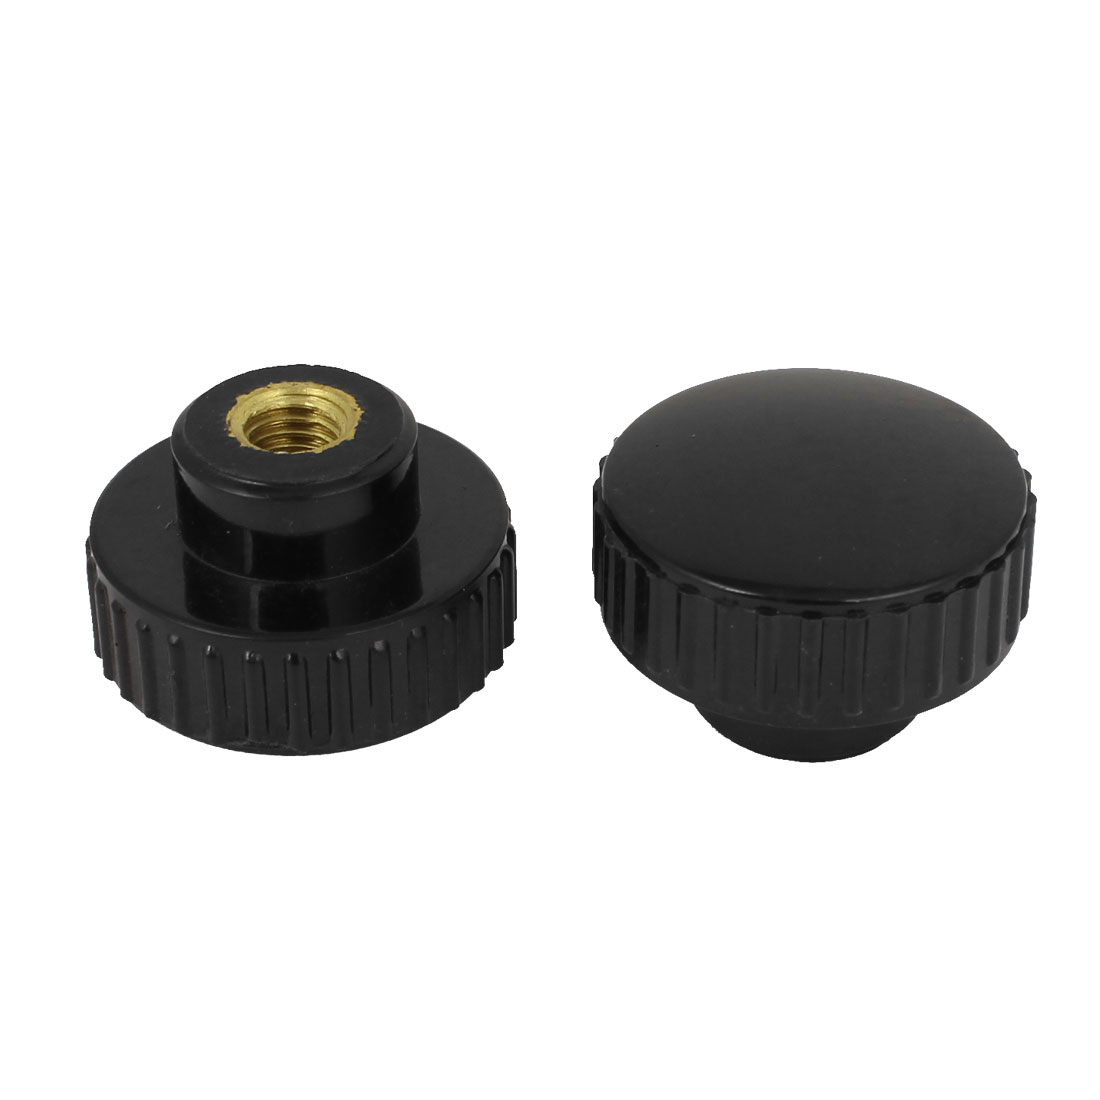 2Pcs Black M8 Female Thread Dia Screw On Type Clamping Round Krnob